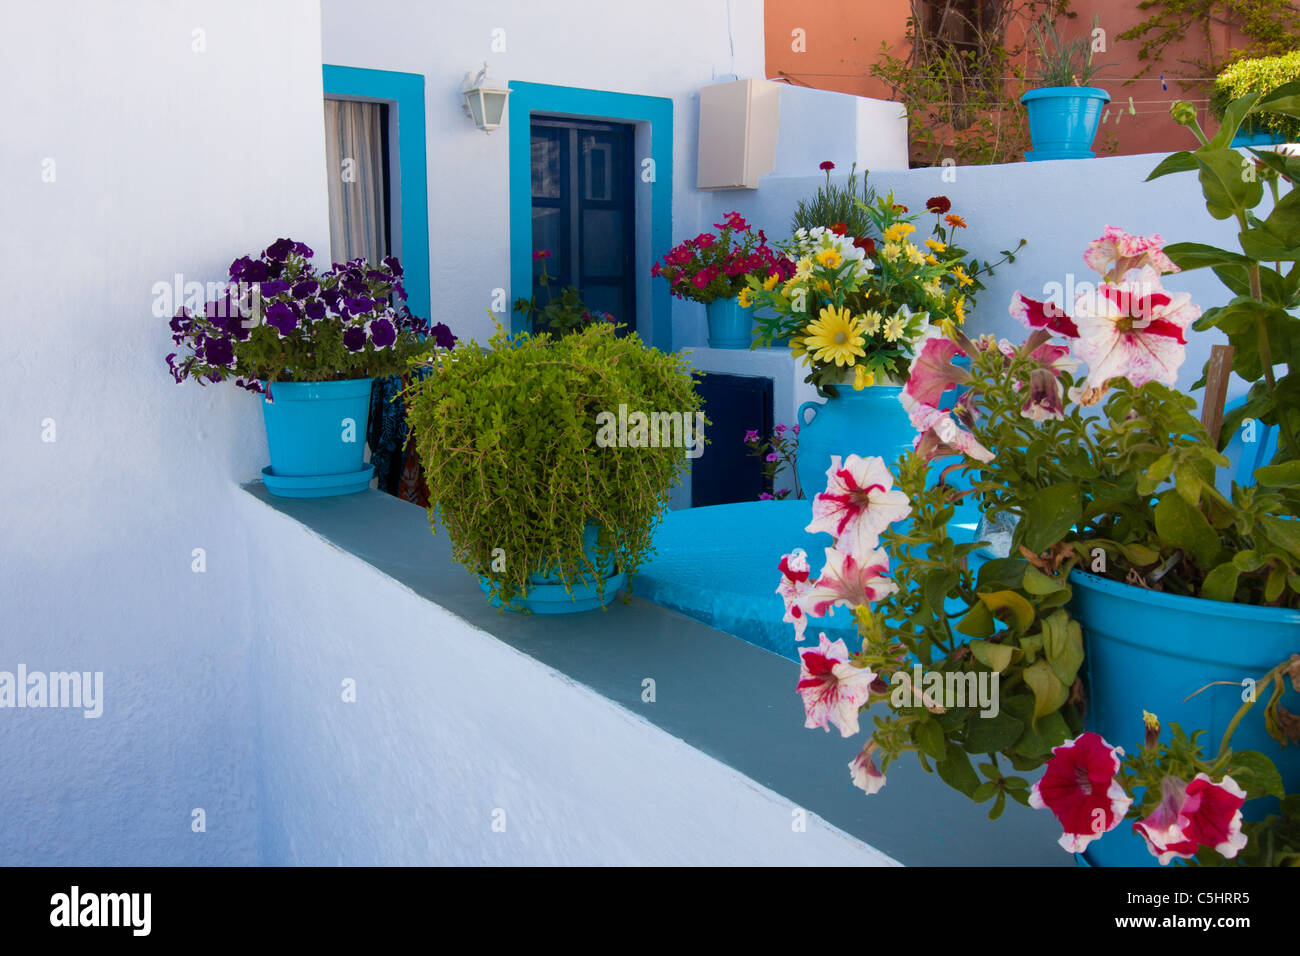 blue flower pots with petunia flowers in front of private colorful